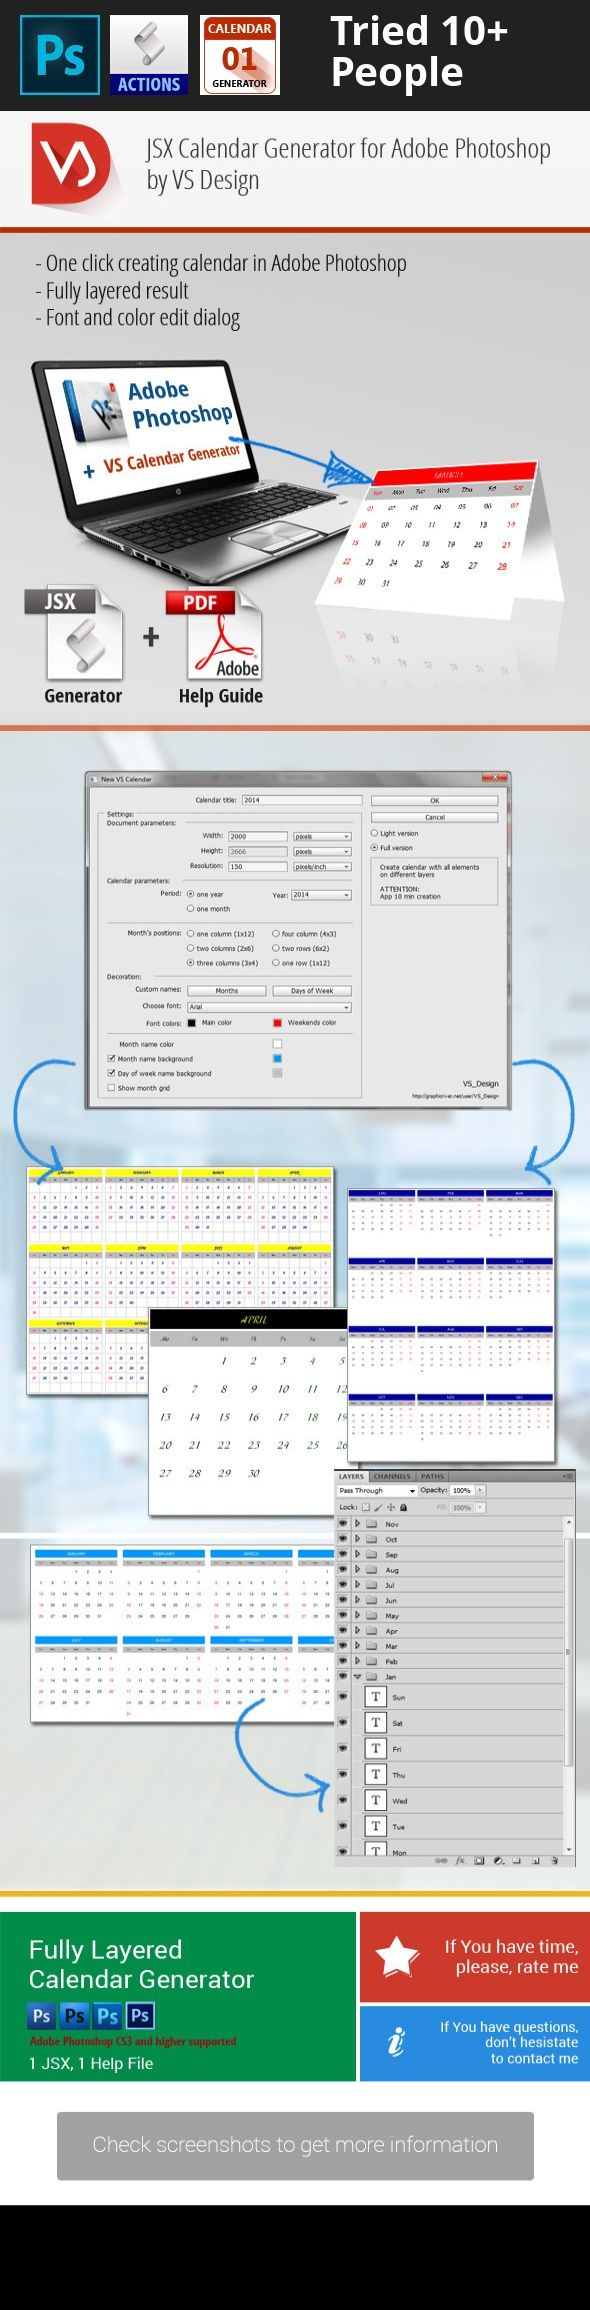 addons, business, calendar, calendar 2014, calendar 2015, calendar 2016, calendar generator, Custom Calendar, dates generator, decor, javascript, JSX, object, office calendar, photo fx, photoshop jsx, photoshop utilities, script, weeks, year Simple way to generate any size calendar in Adobe Photoshop document.   	Do You need layered calendar for some year or month? Do You haven't time to type it Yourself? All you need to do is run VS Calendar Generator script. A calendar can now be create...